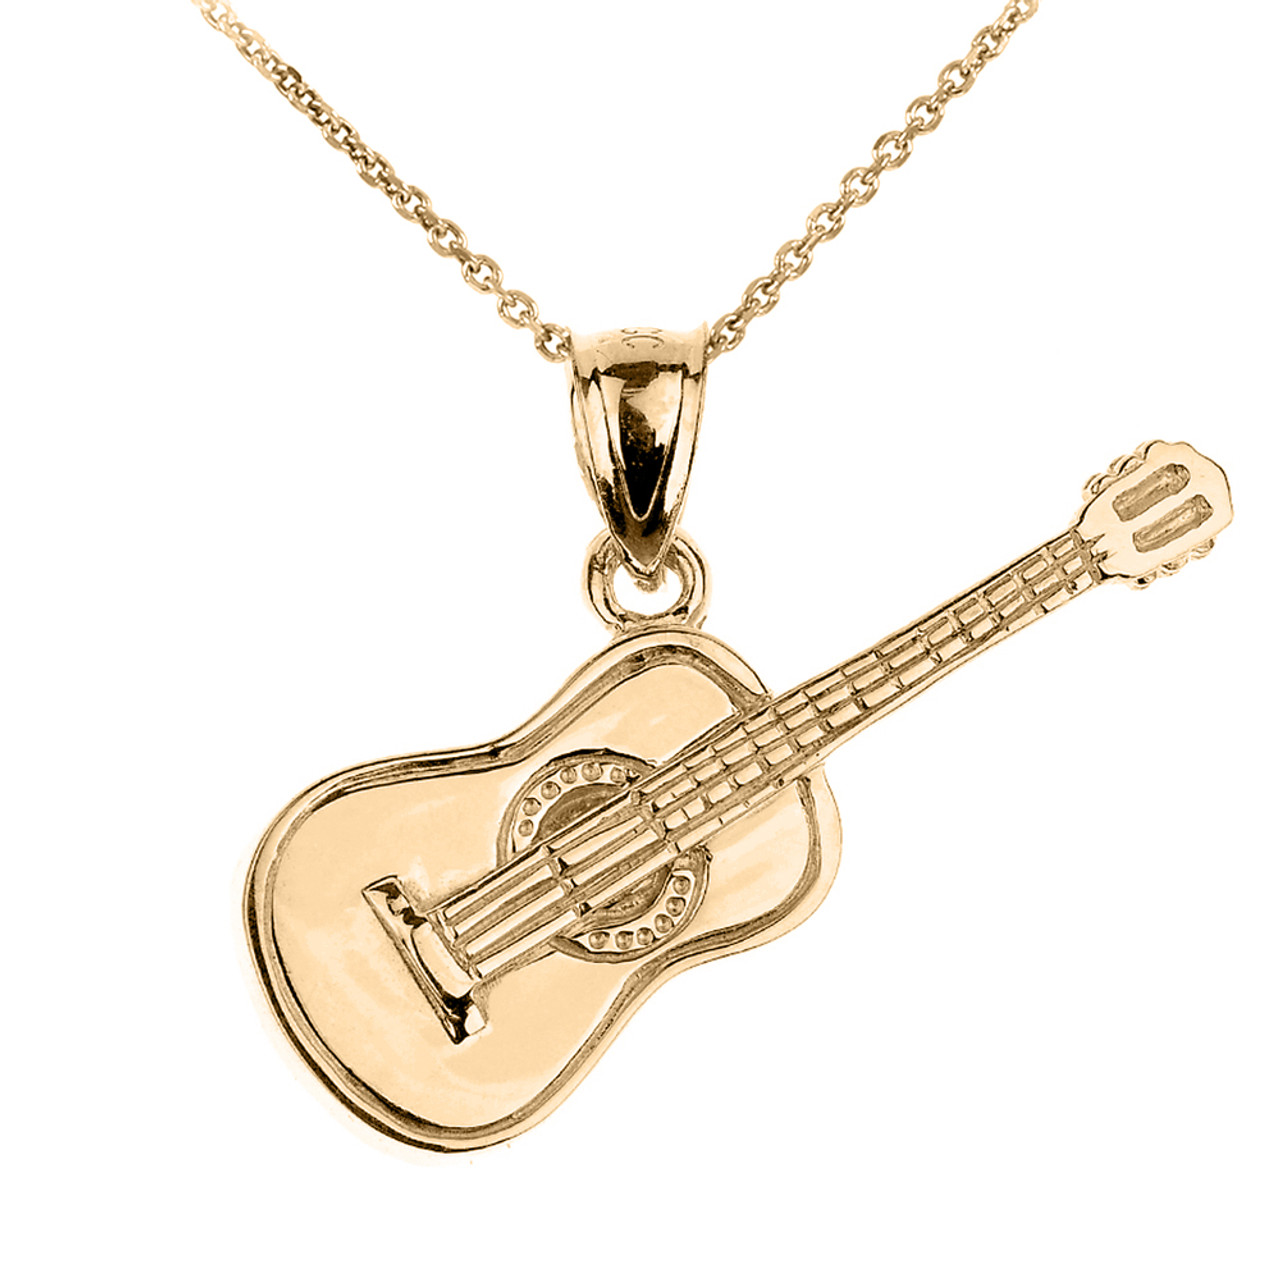 ebay set solid itm pendant necklace gold gift chain jewellery boxed s uk guitar